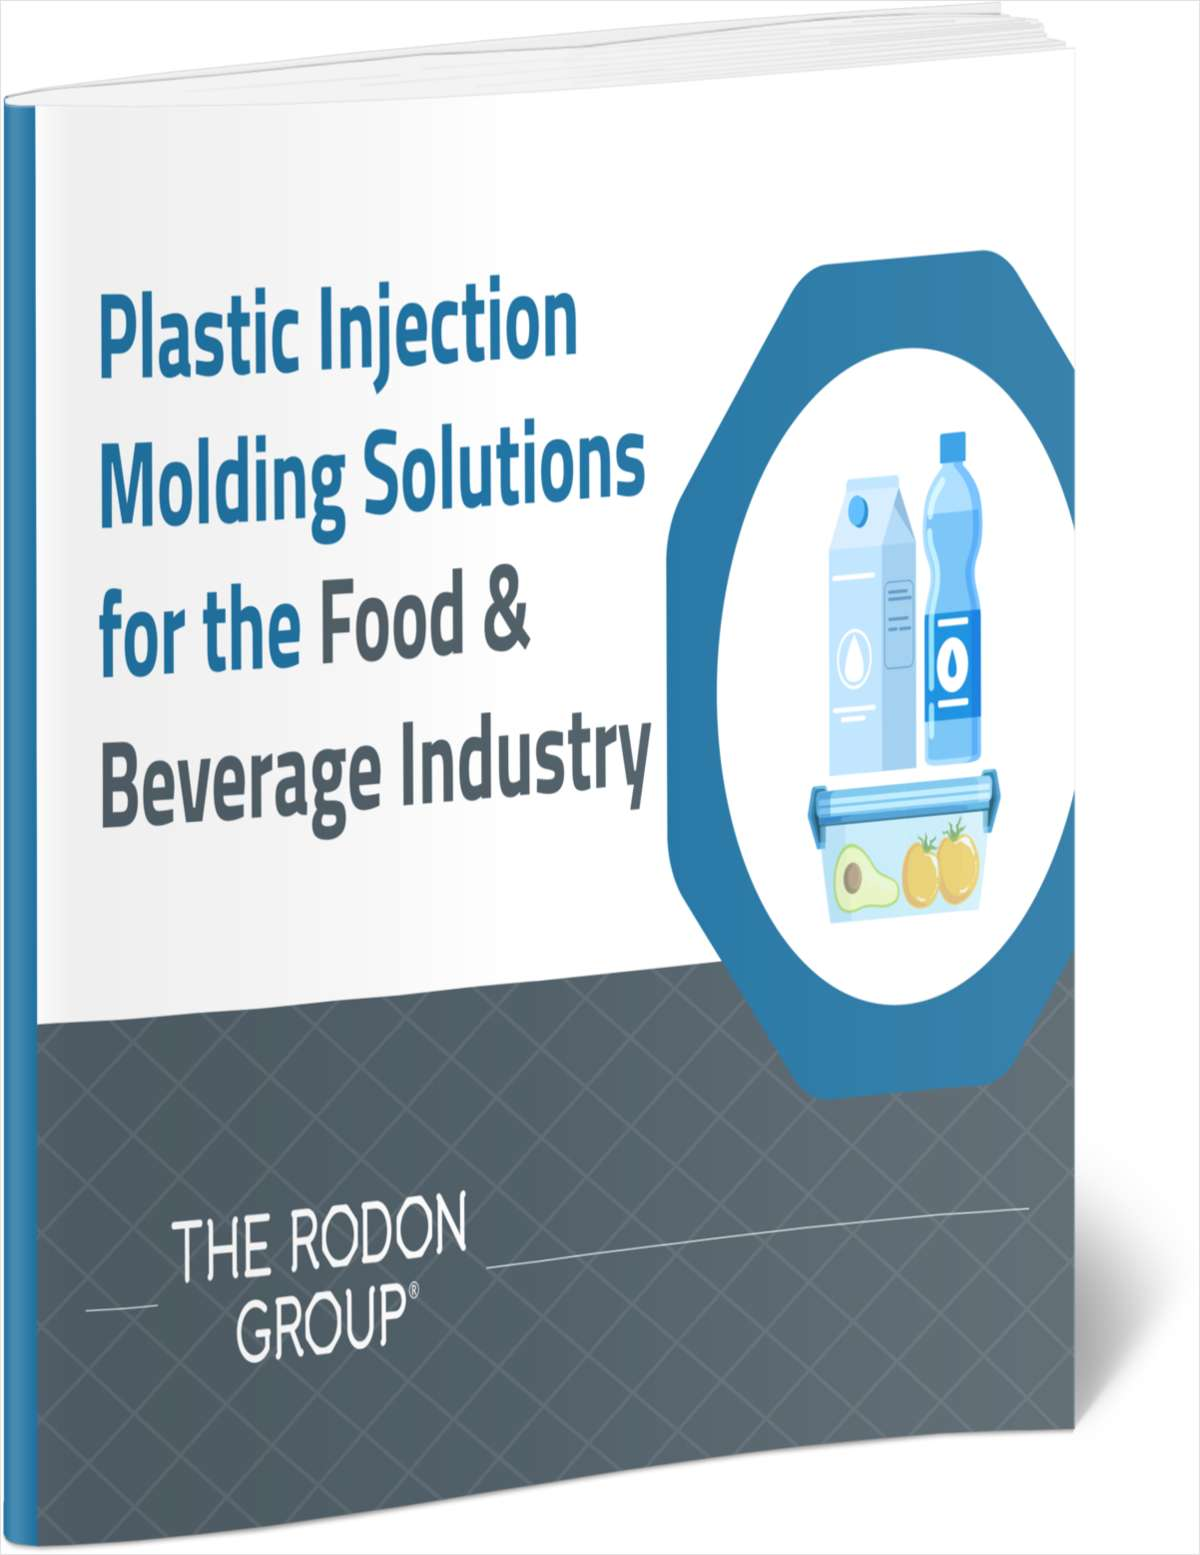 Plastic Injection Molding for the Food & Beverage Industry